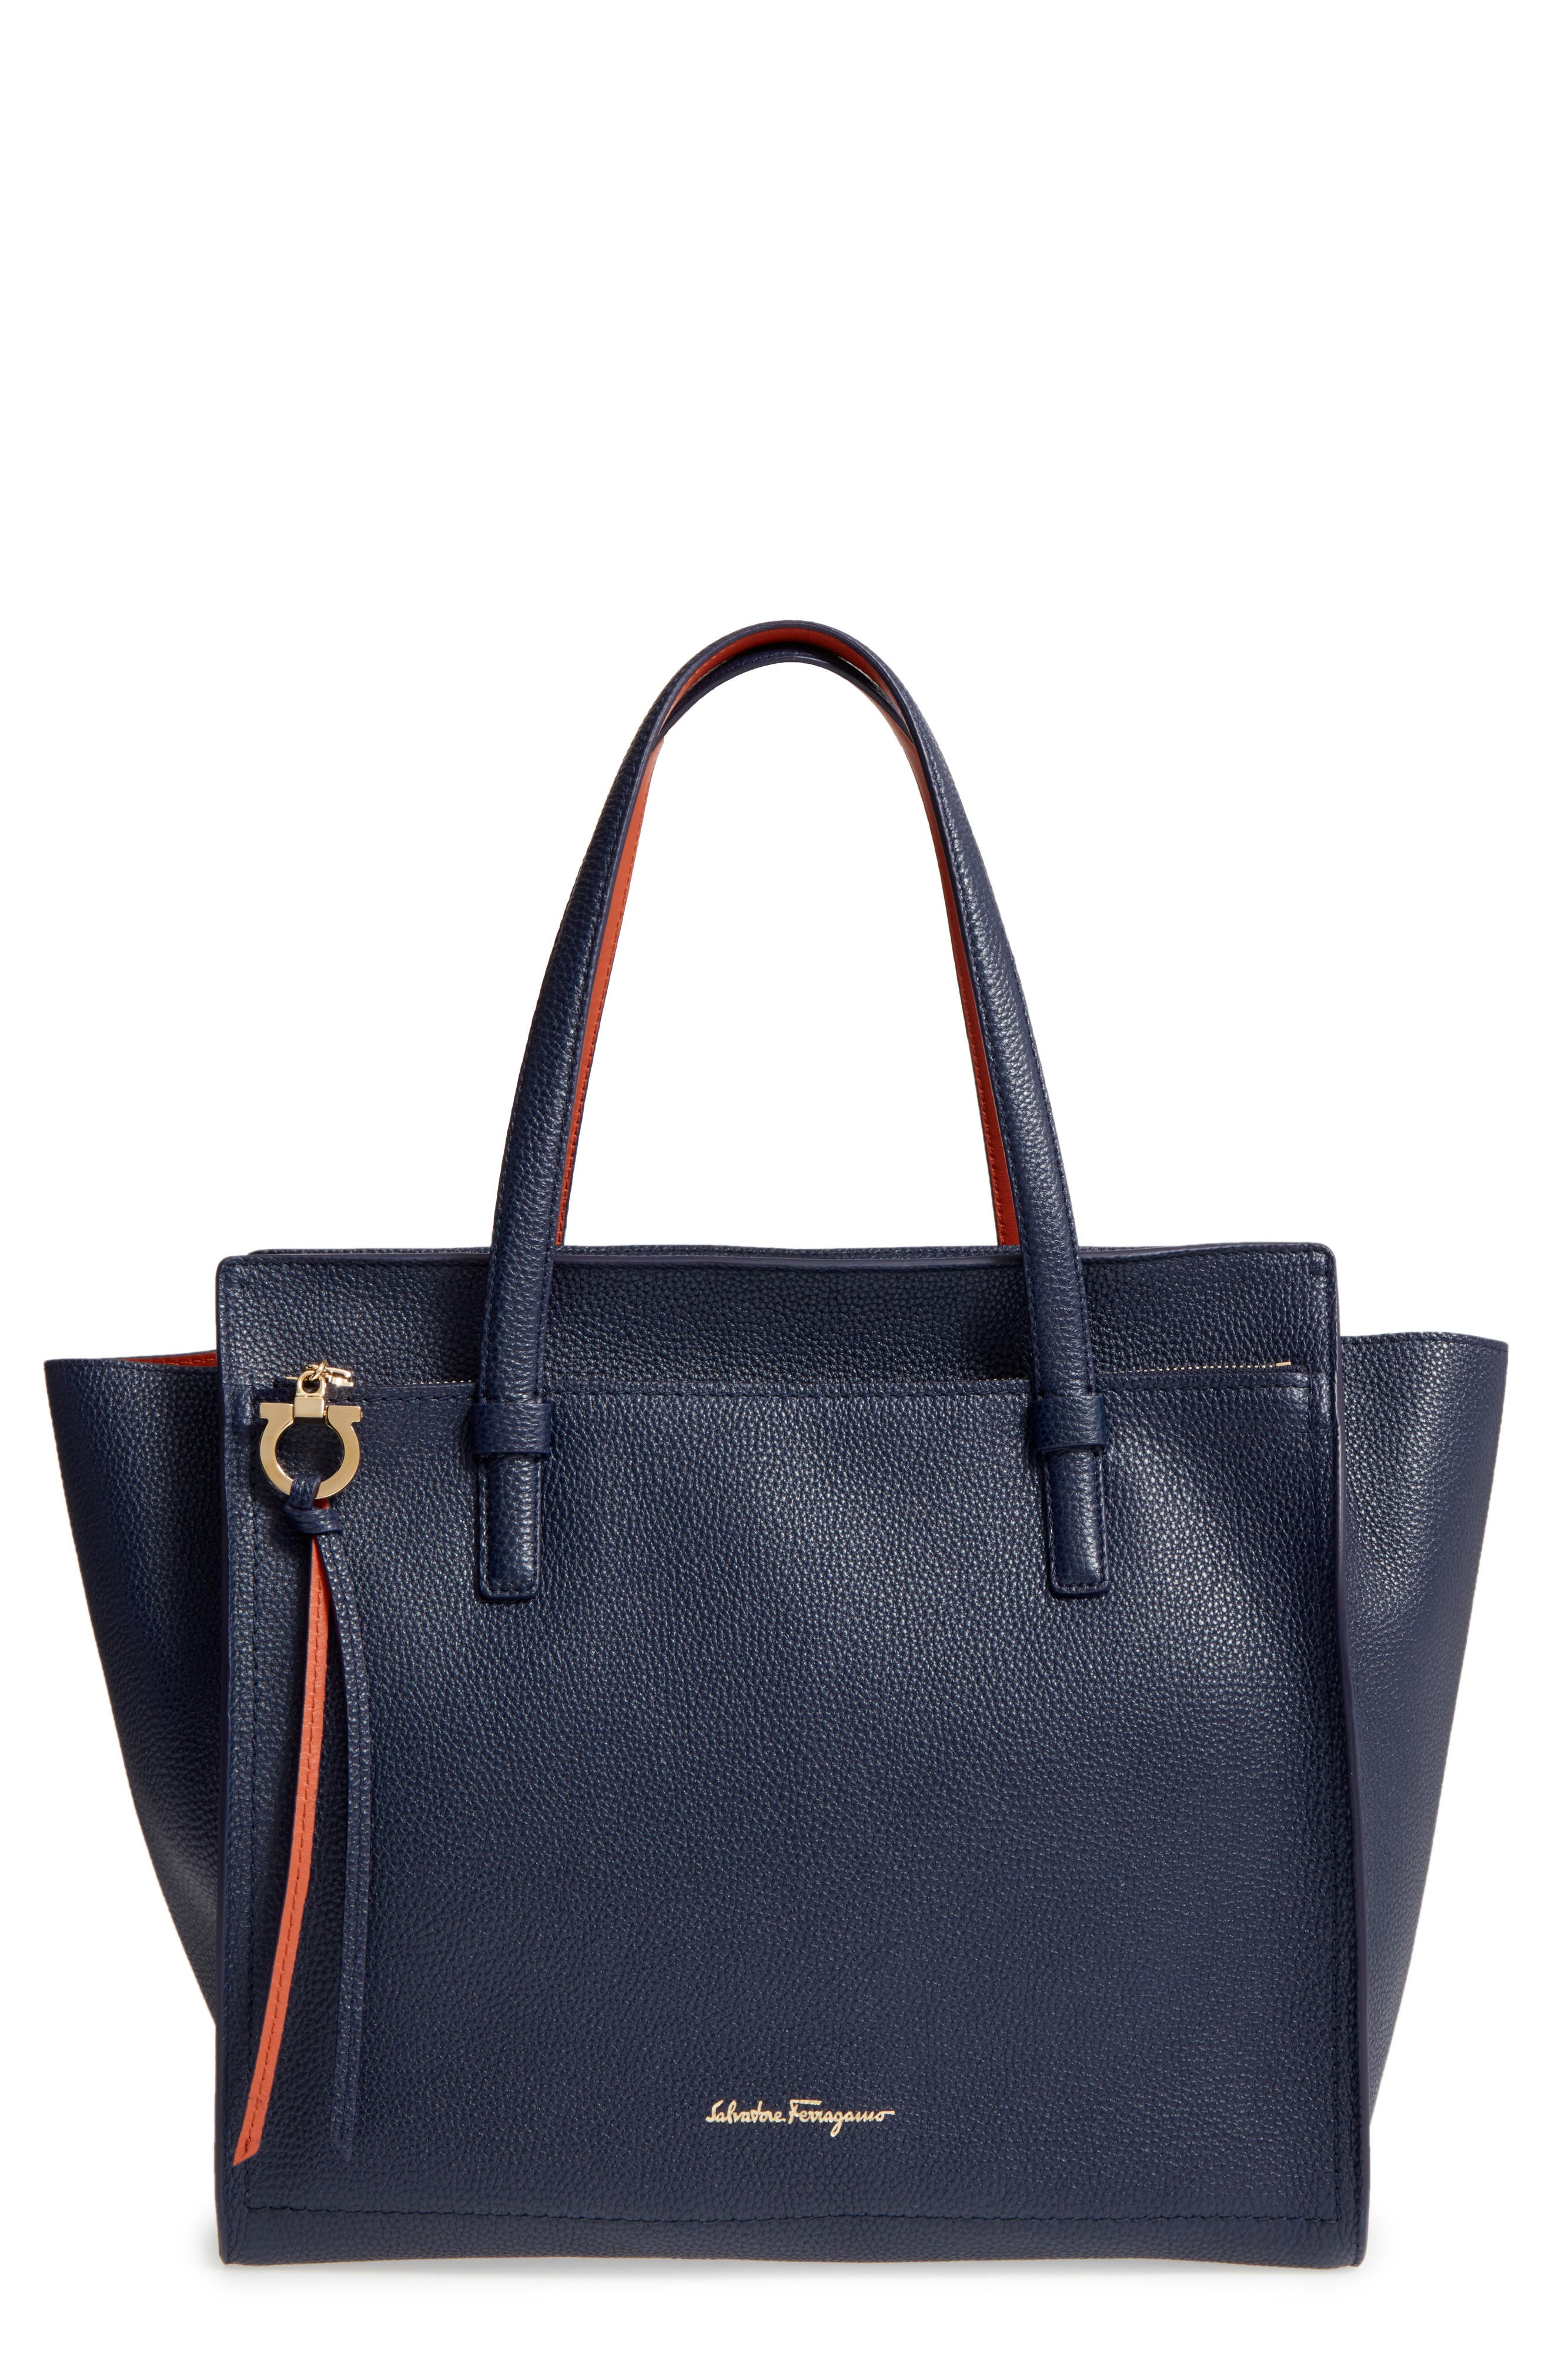 Alternate Image 1 Selected - Salvatore Ferragamo Large Pebbled Leather Tote